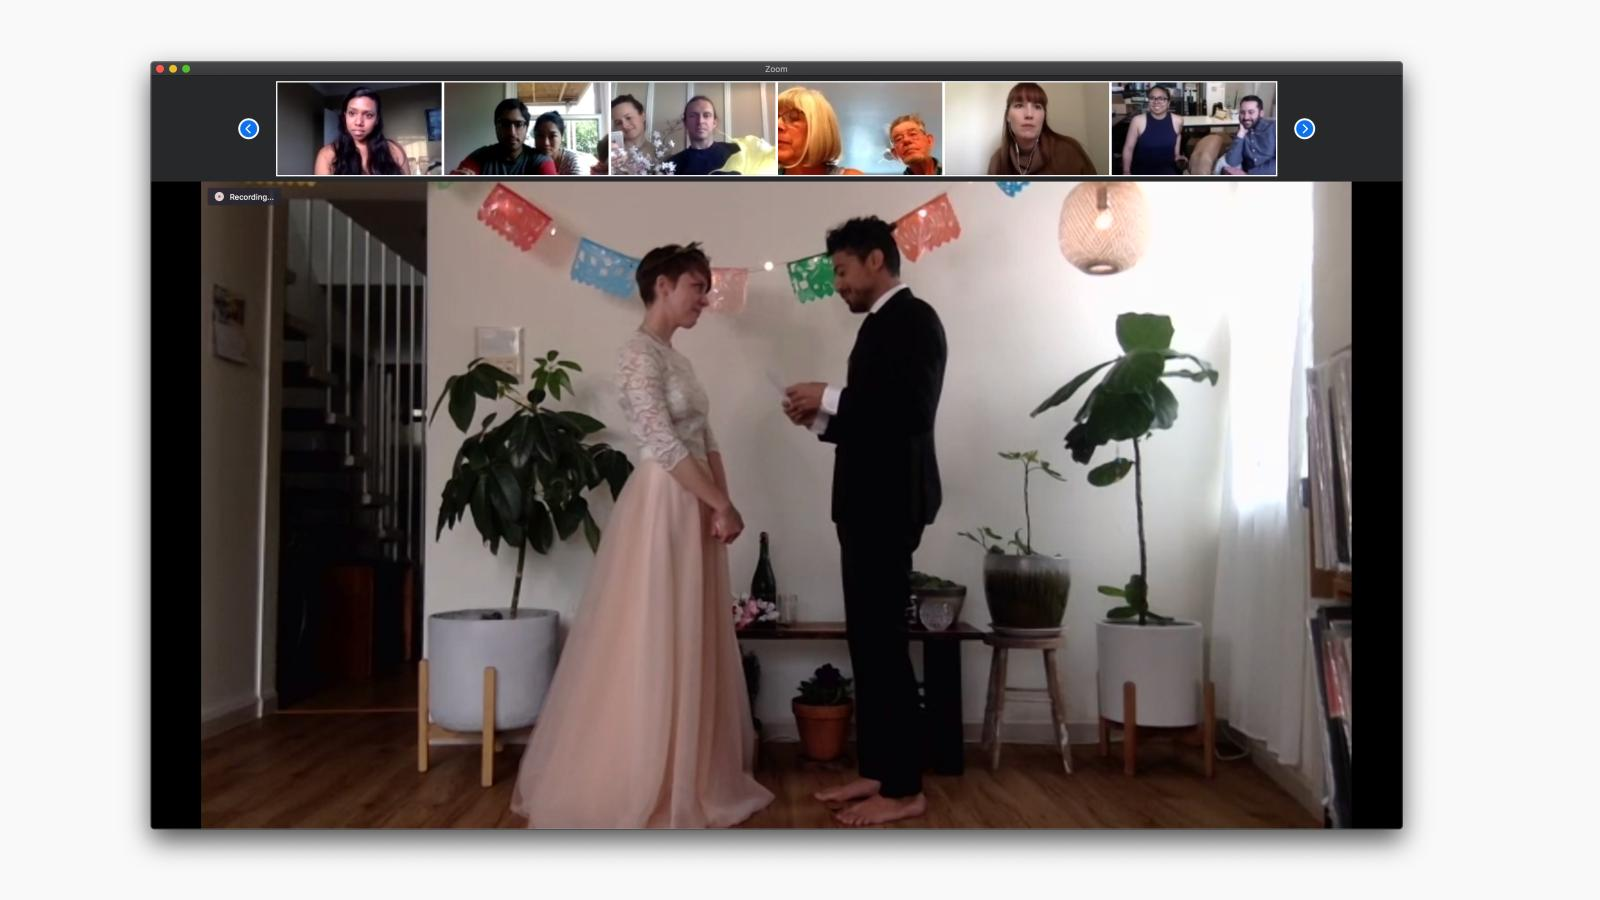 When your friends marry on Zoom because of a coronavirus pandemic ...